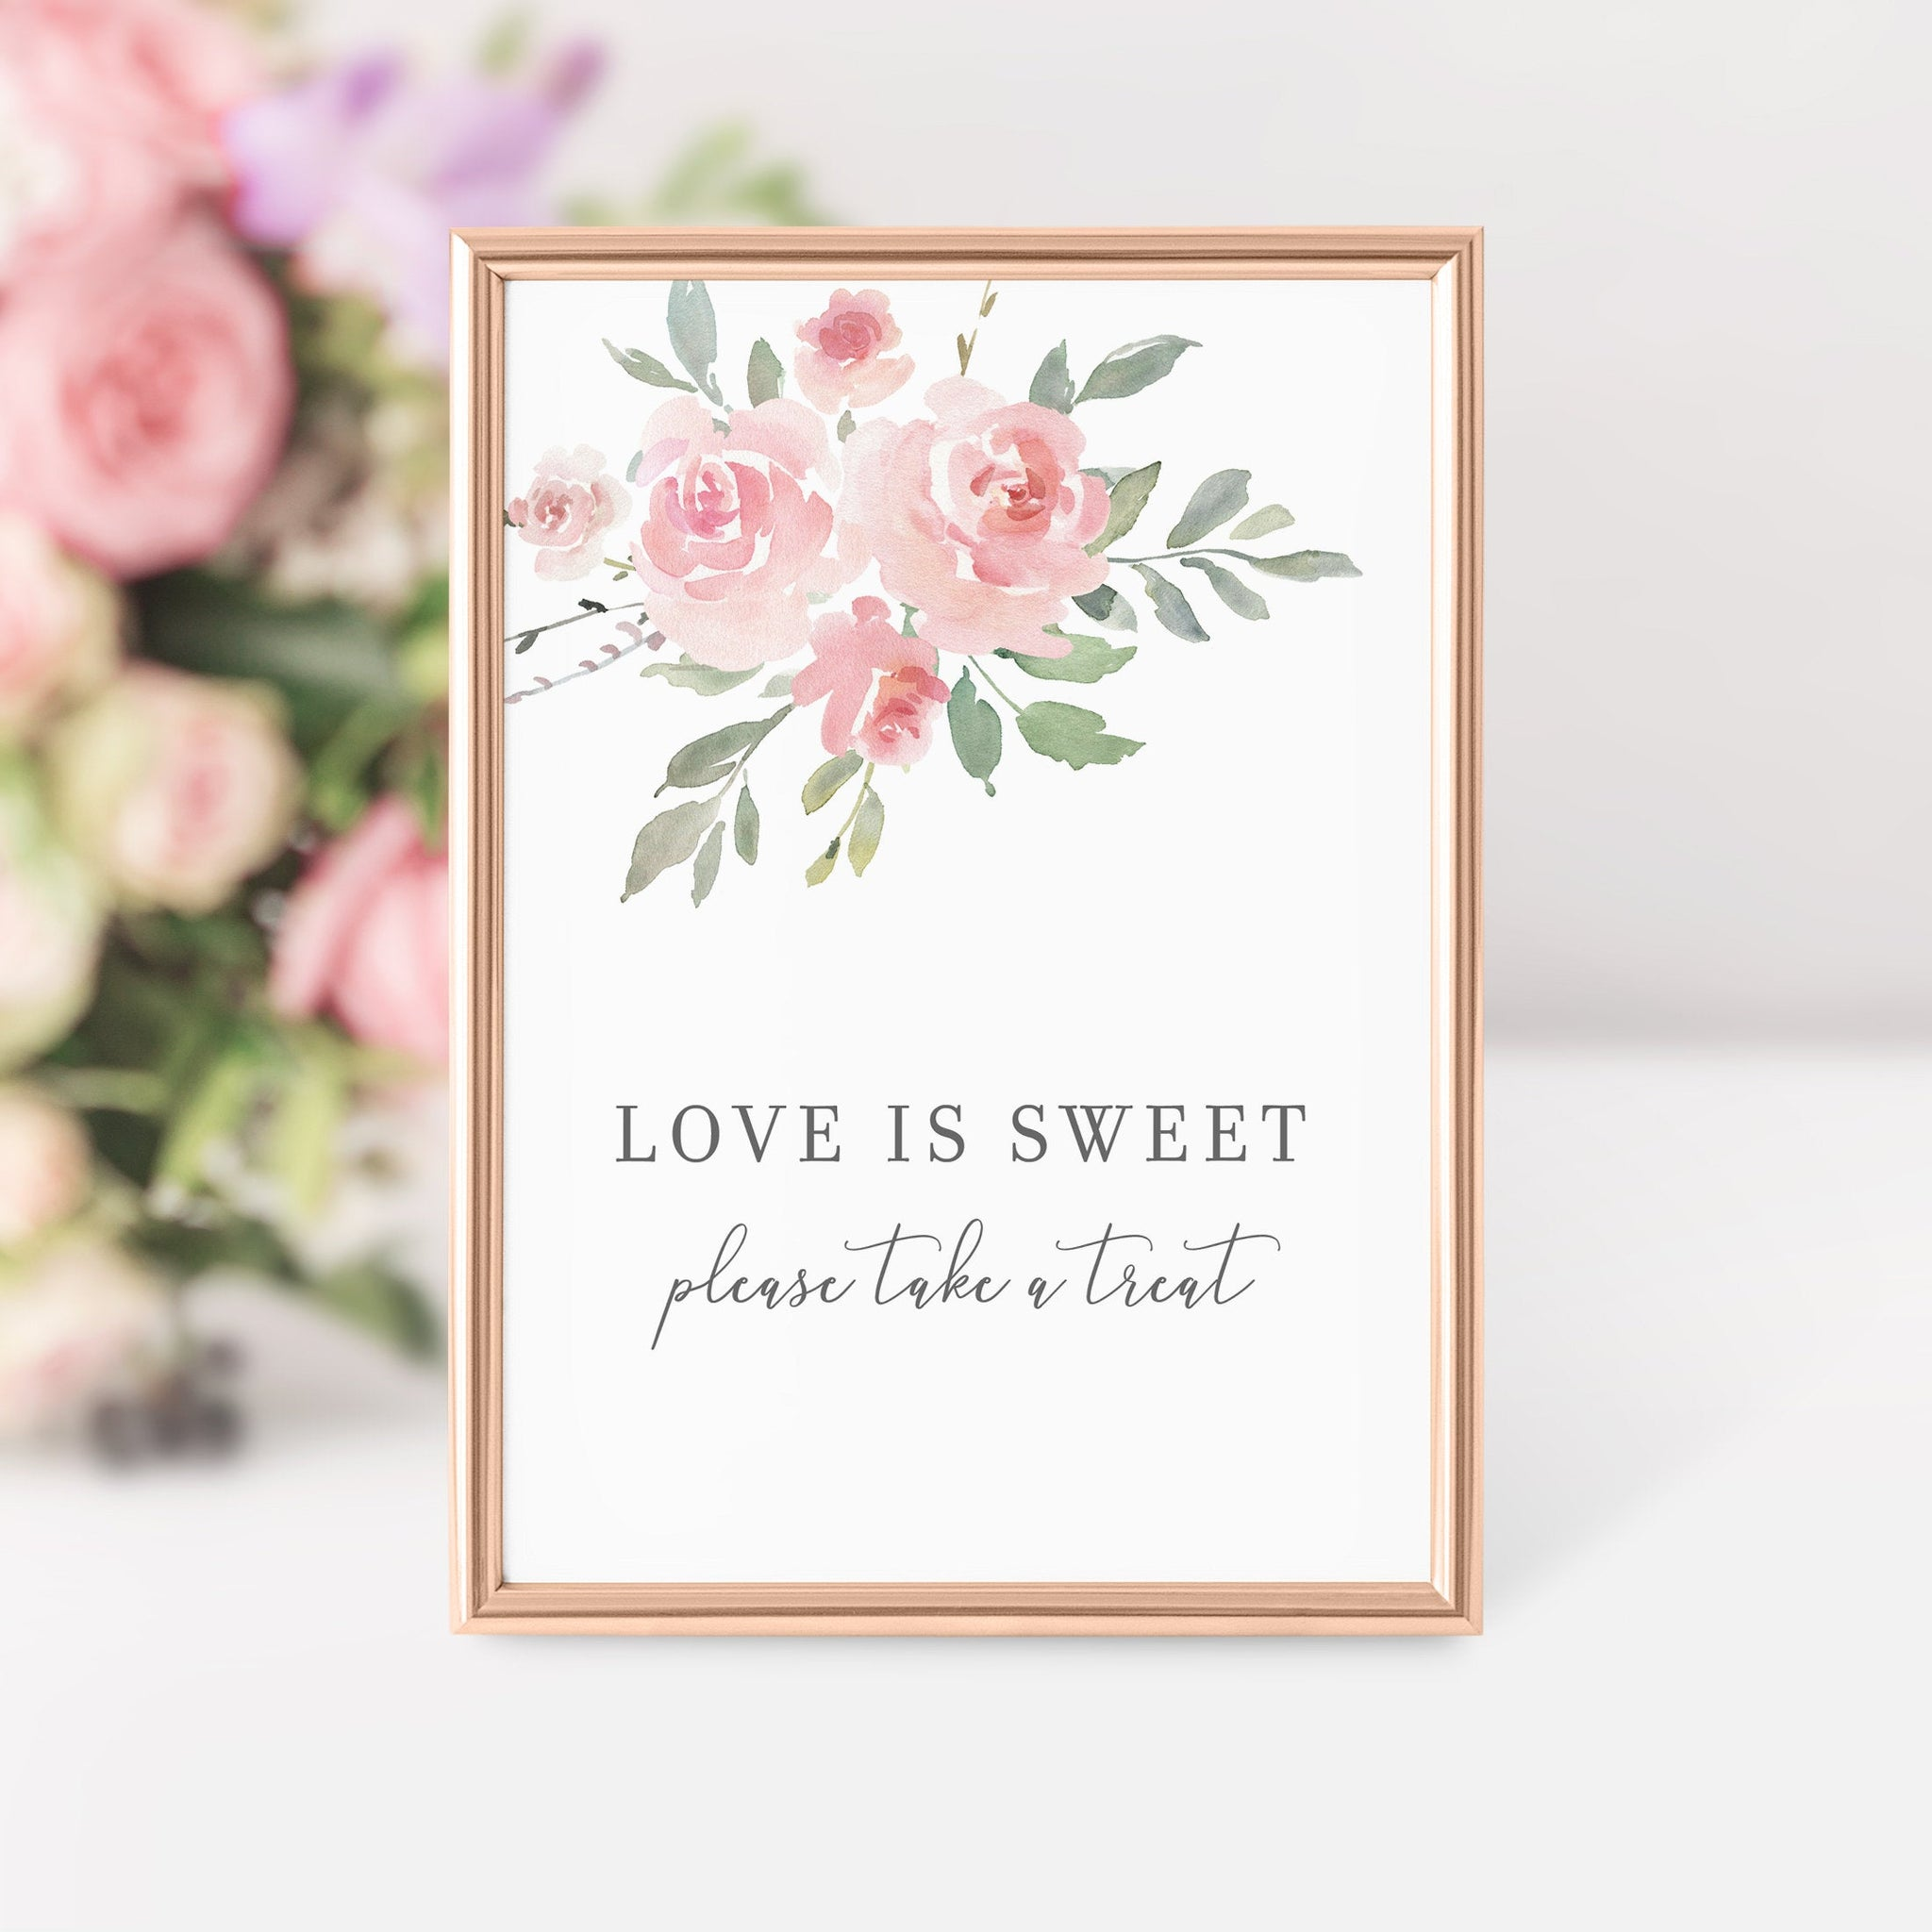 Bridal Shower Dessert Table Sign, Love Is Sweet Take a Treat Sign, Wedding Dessert Table Decorations, DIGITAL DOWNLOAD - FR100